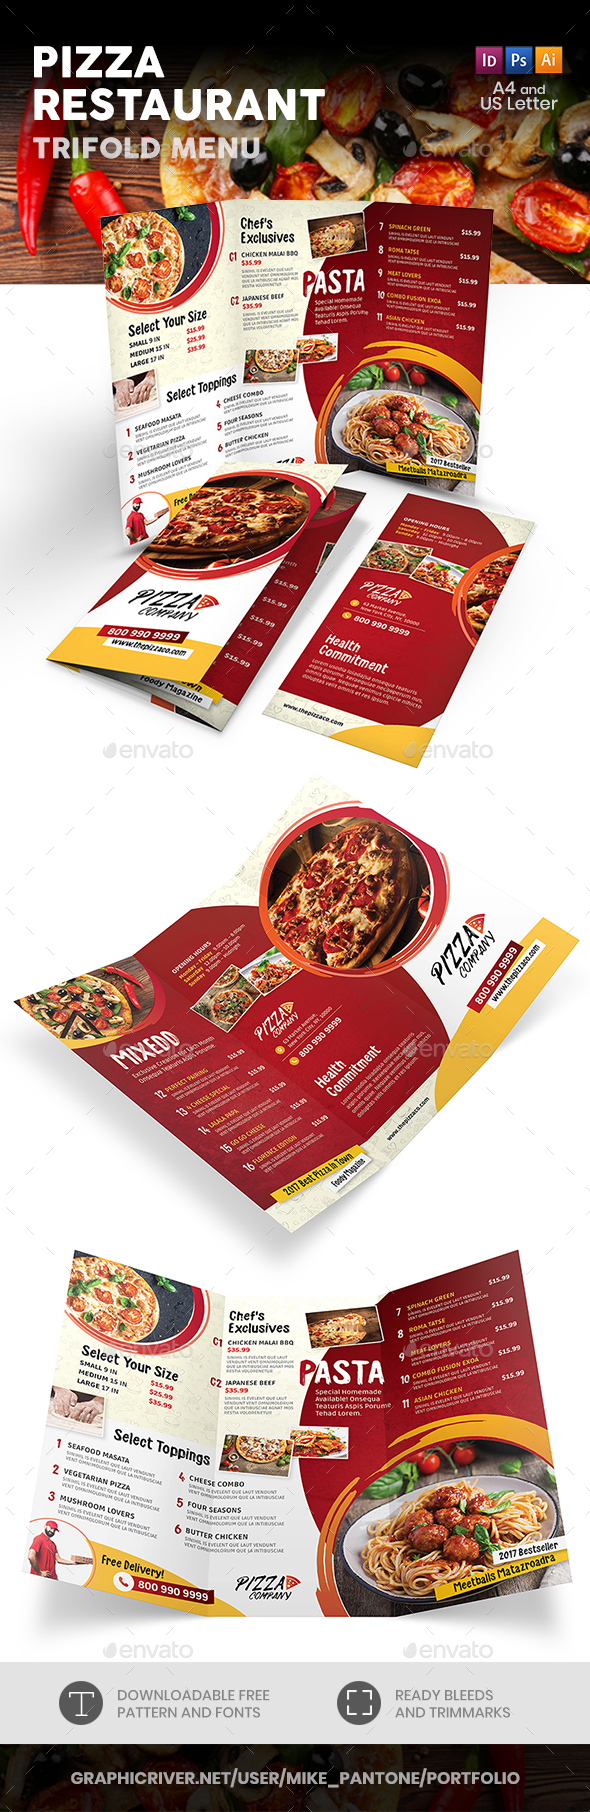 Pizza Restaurant Trifold Menu 2 - Food Menus Print Templates